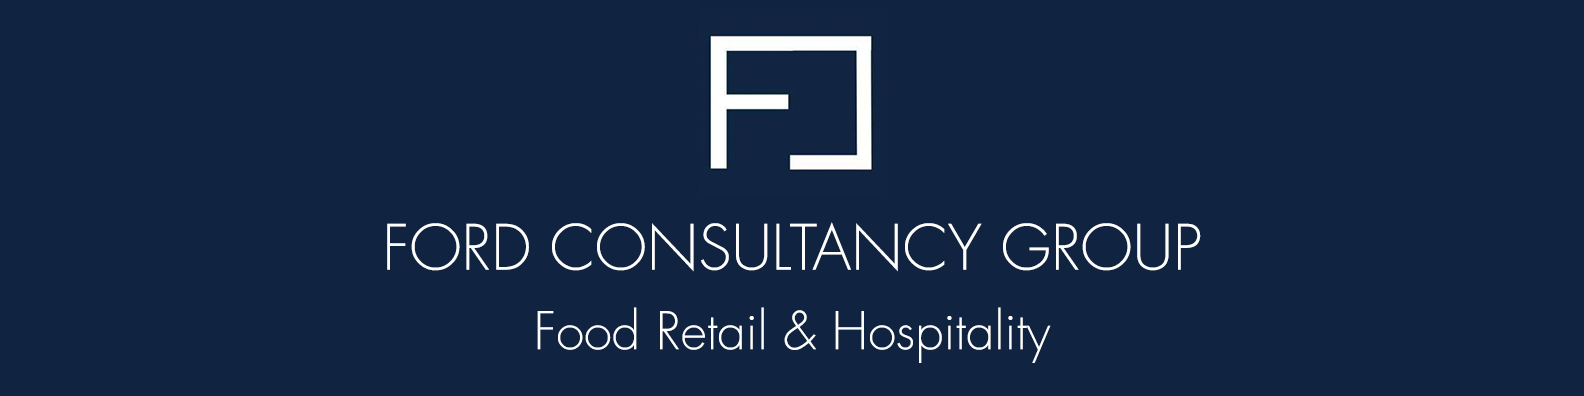 Ford Consultancy Group – Client Highlight